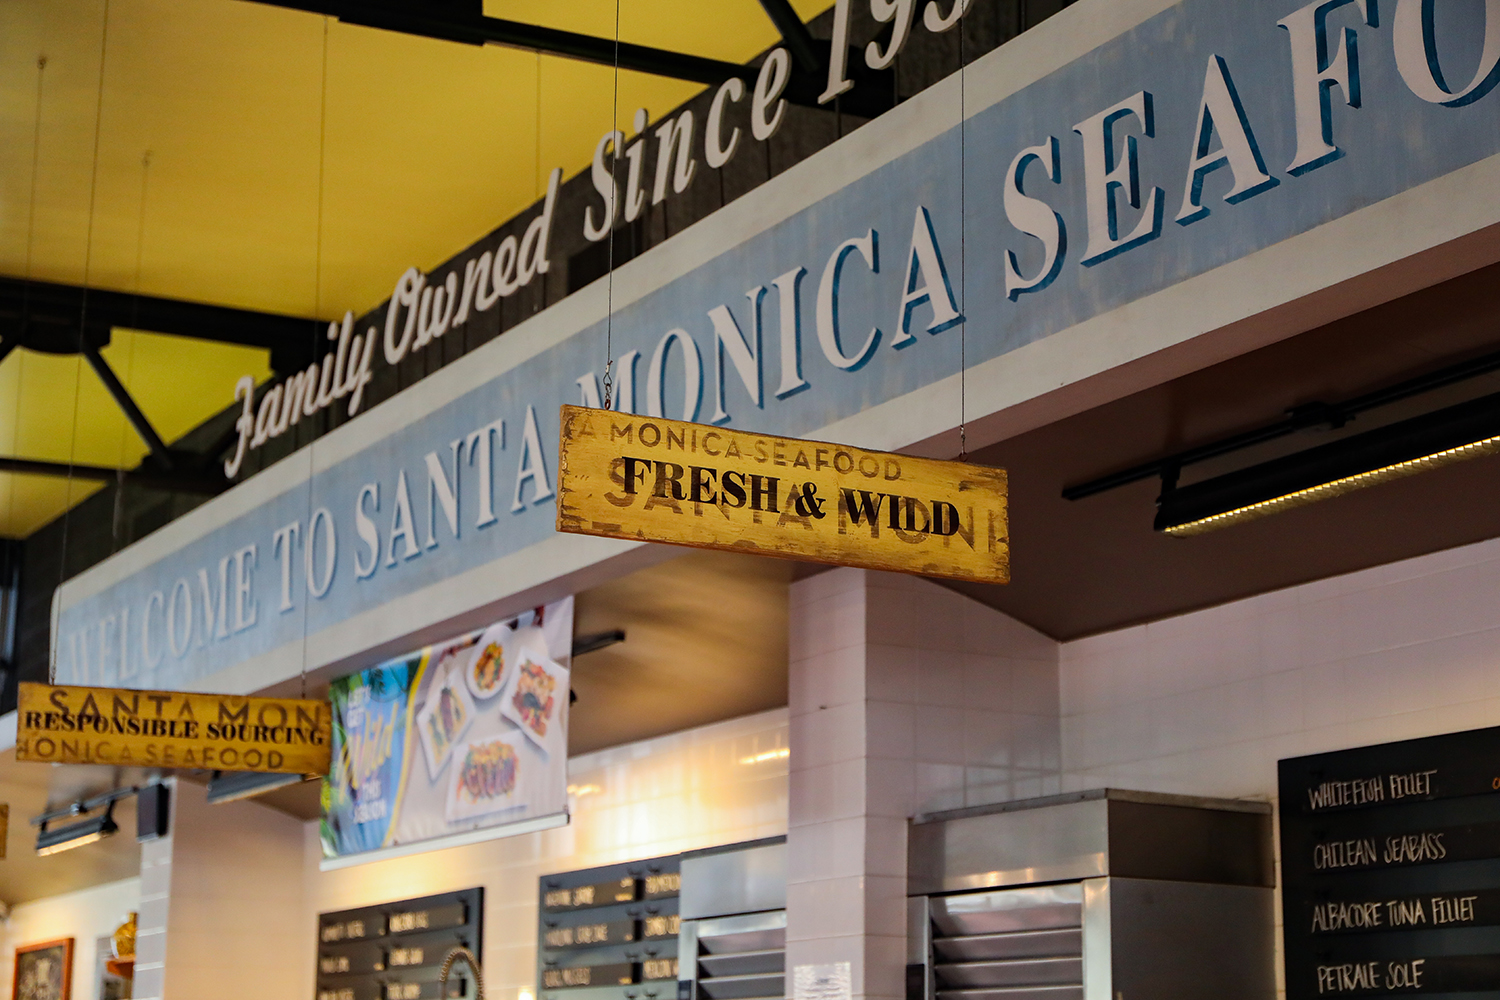 If you love to know where your food comes from, then you'll love learning the history behind Santa Monica Seafood and how all So Cal shoppers can find their seafood at Albertsons.